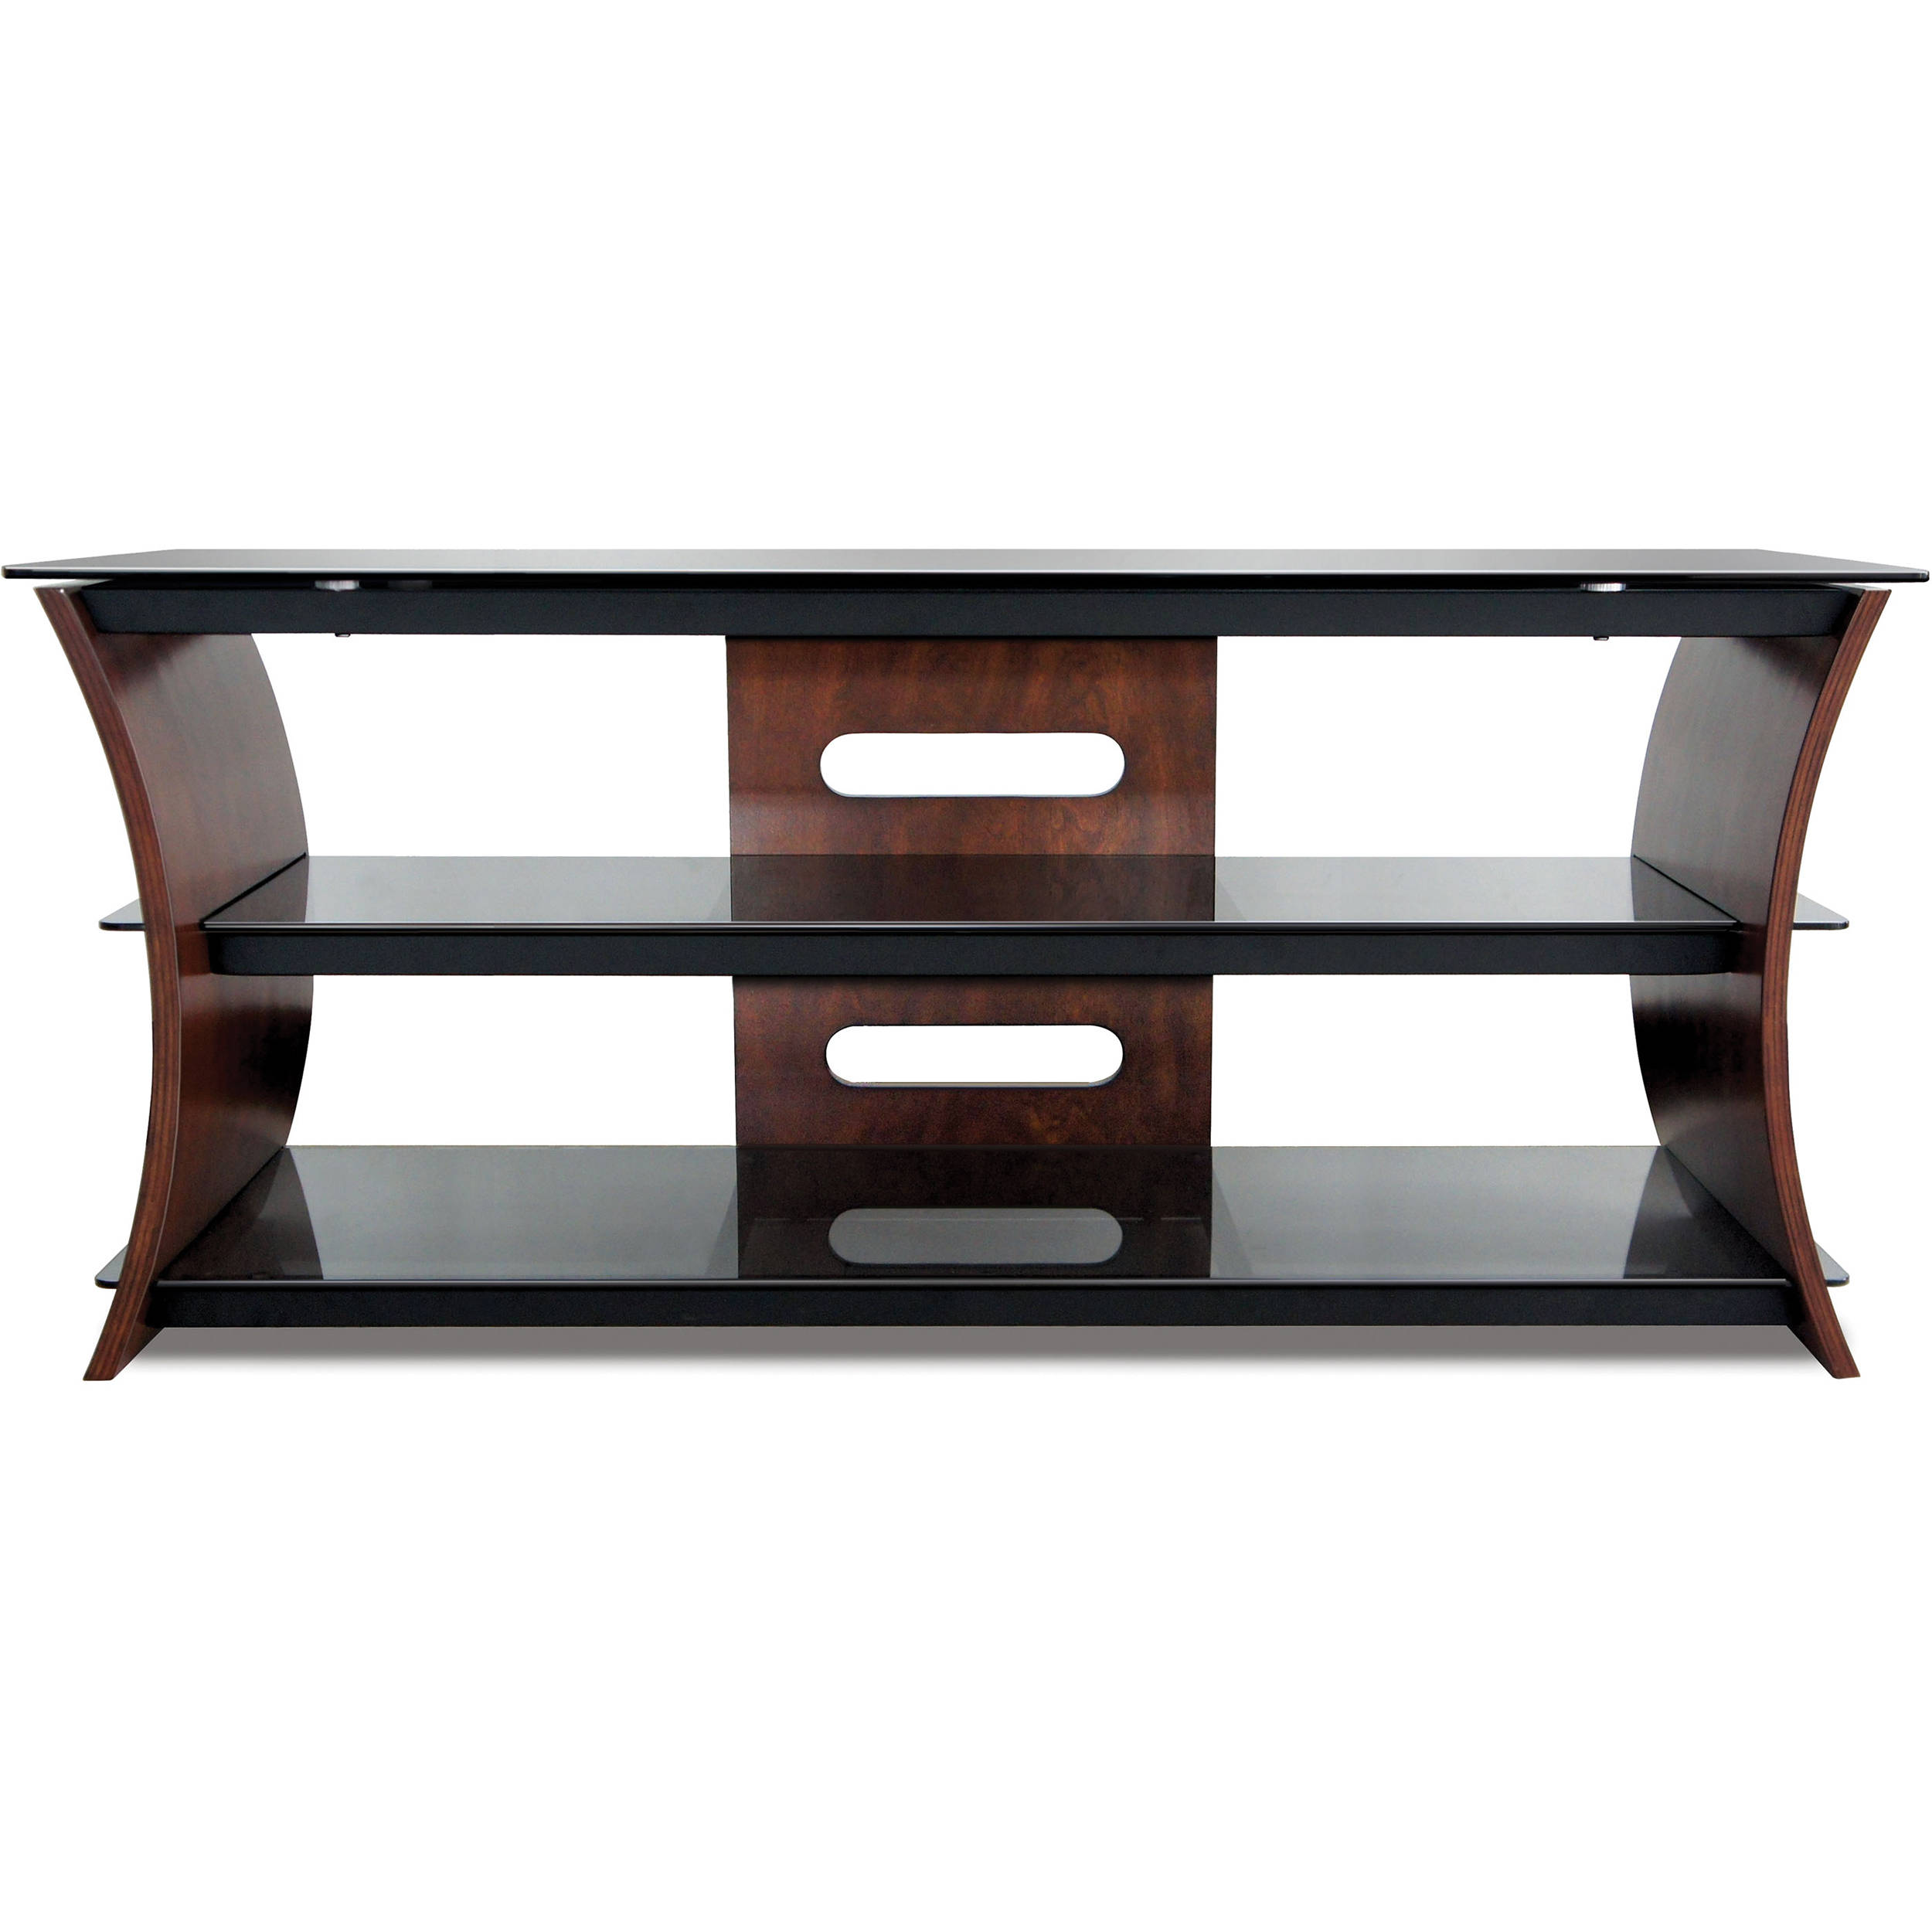 Bell O Cw356 Curved Wood Tv Stand Cw356 B H Photo Video